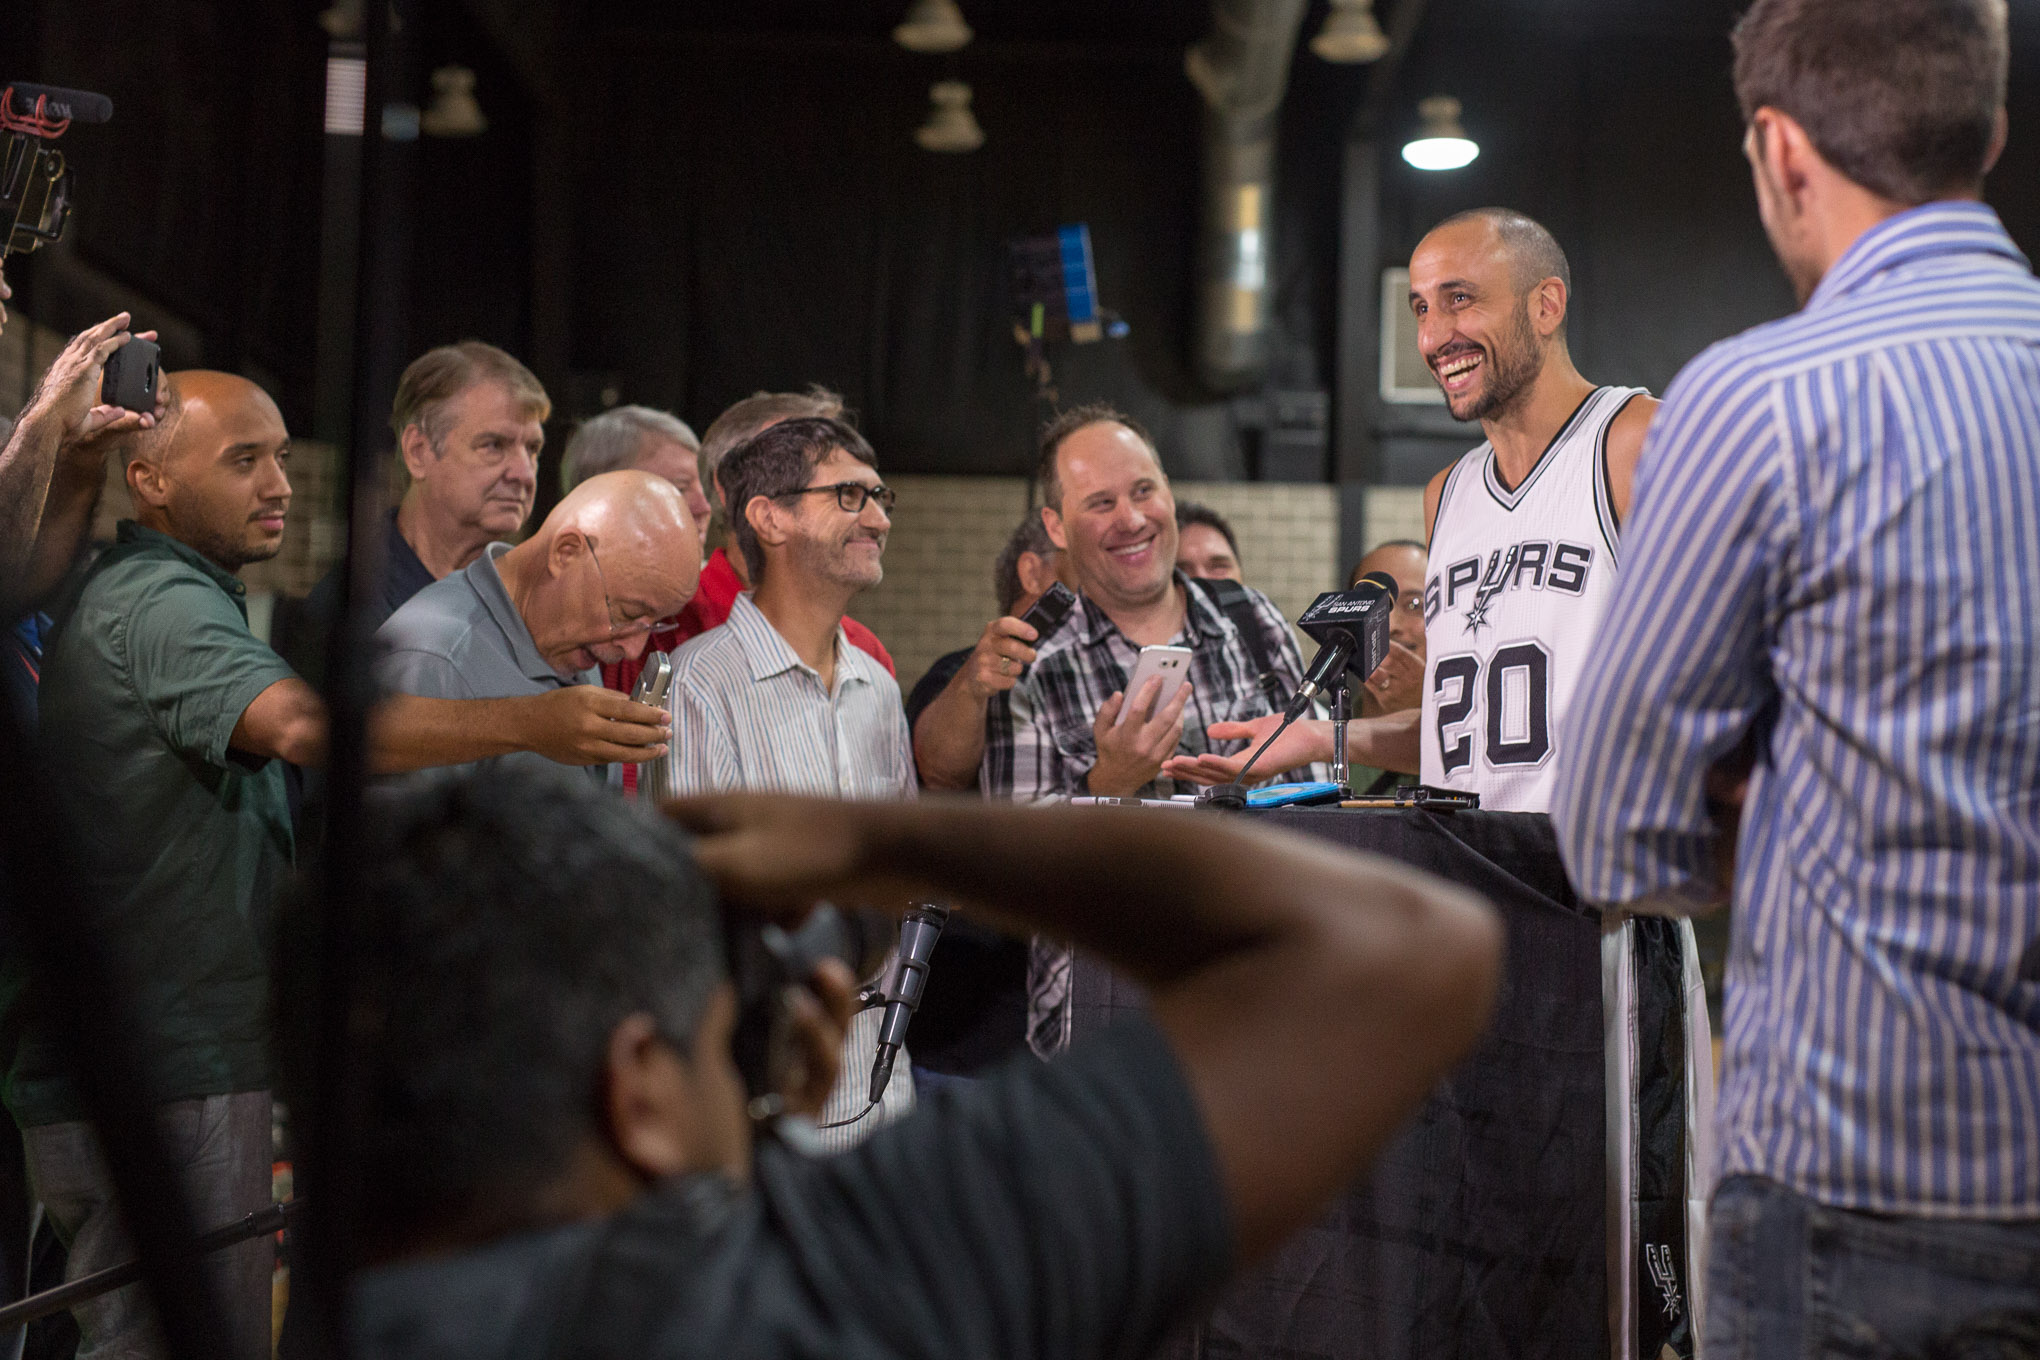 San Antonio Spurs Guard Manu Ginobili laughs following a question from a reporter. Photo by Scott Ball.